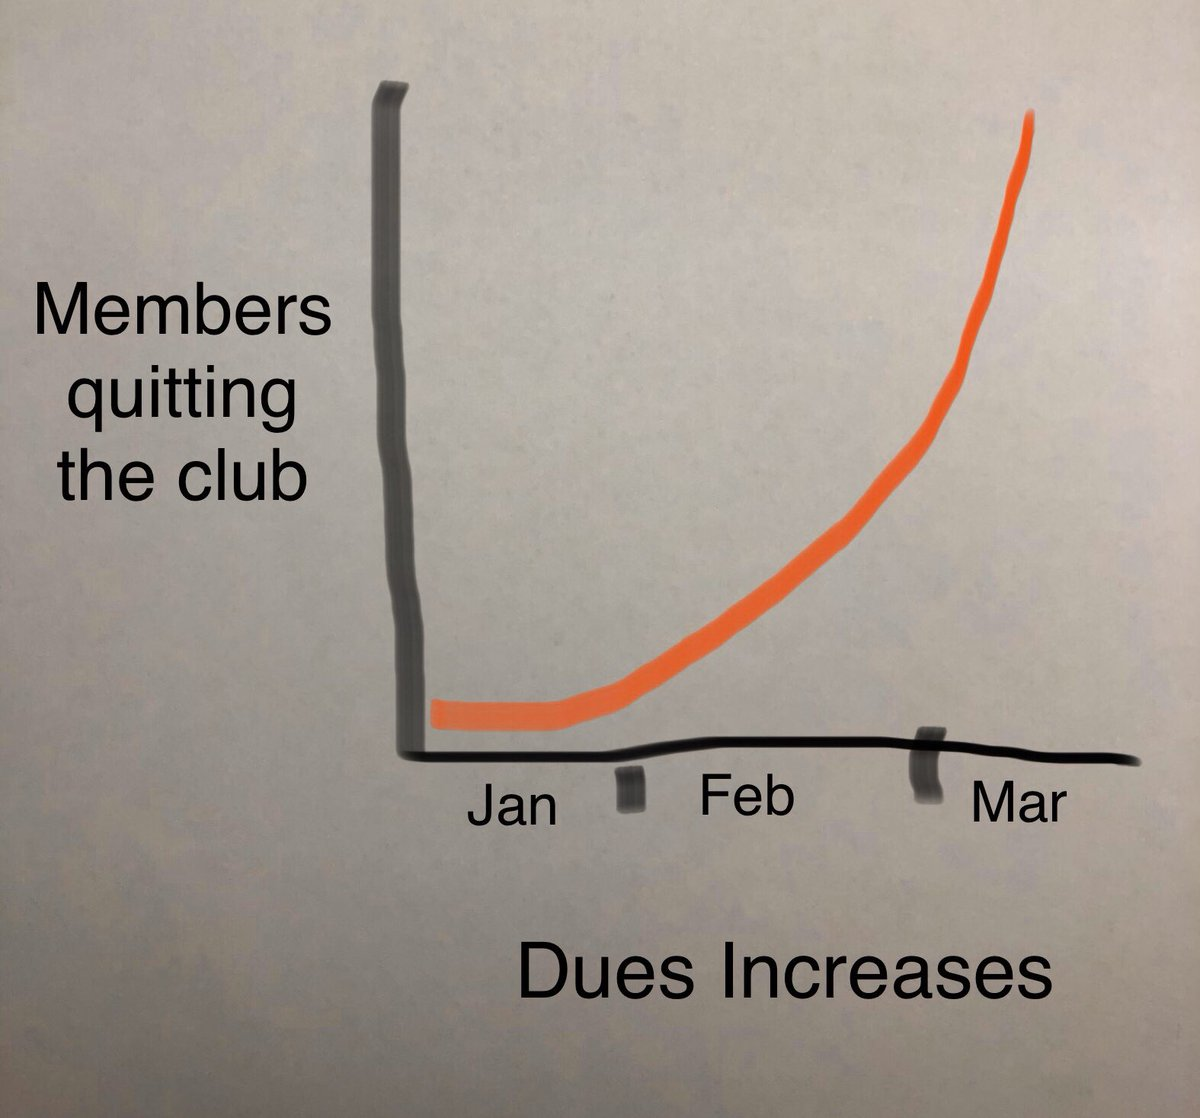 As a club, our only concern at this point is flattening the curve.